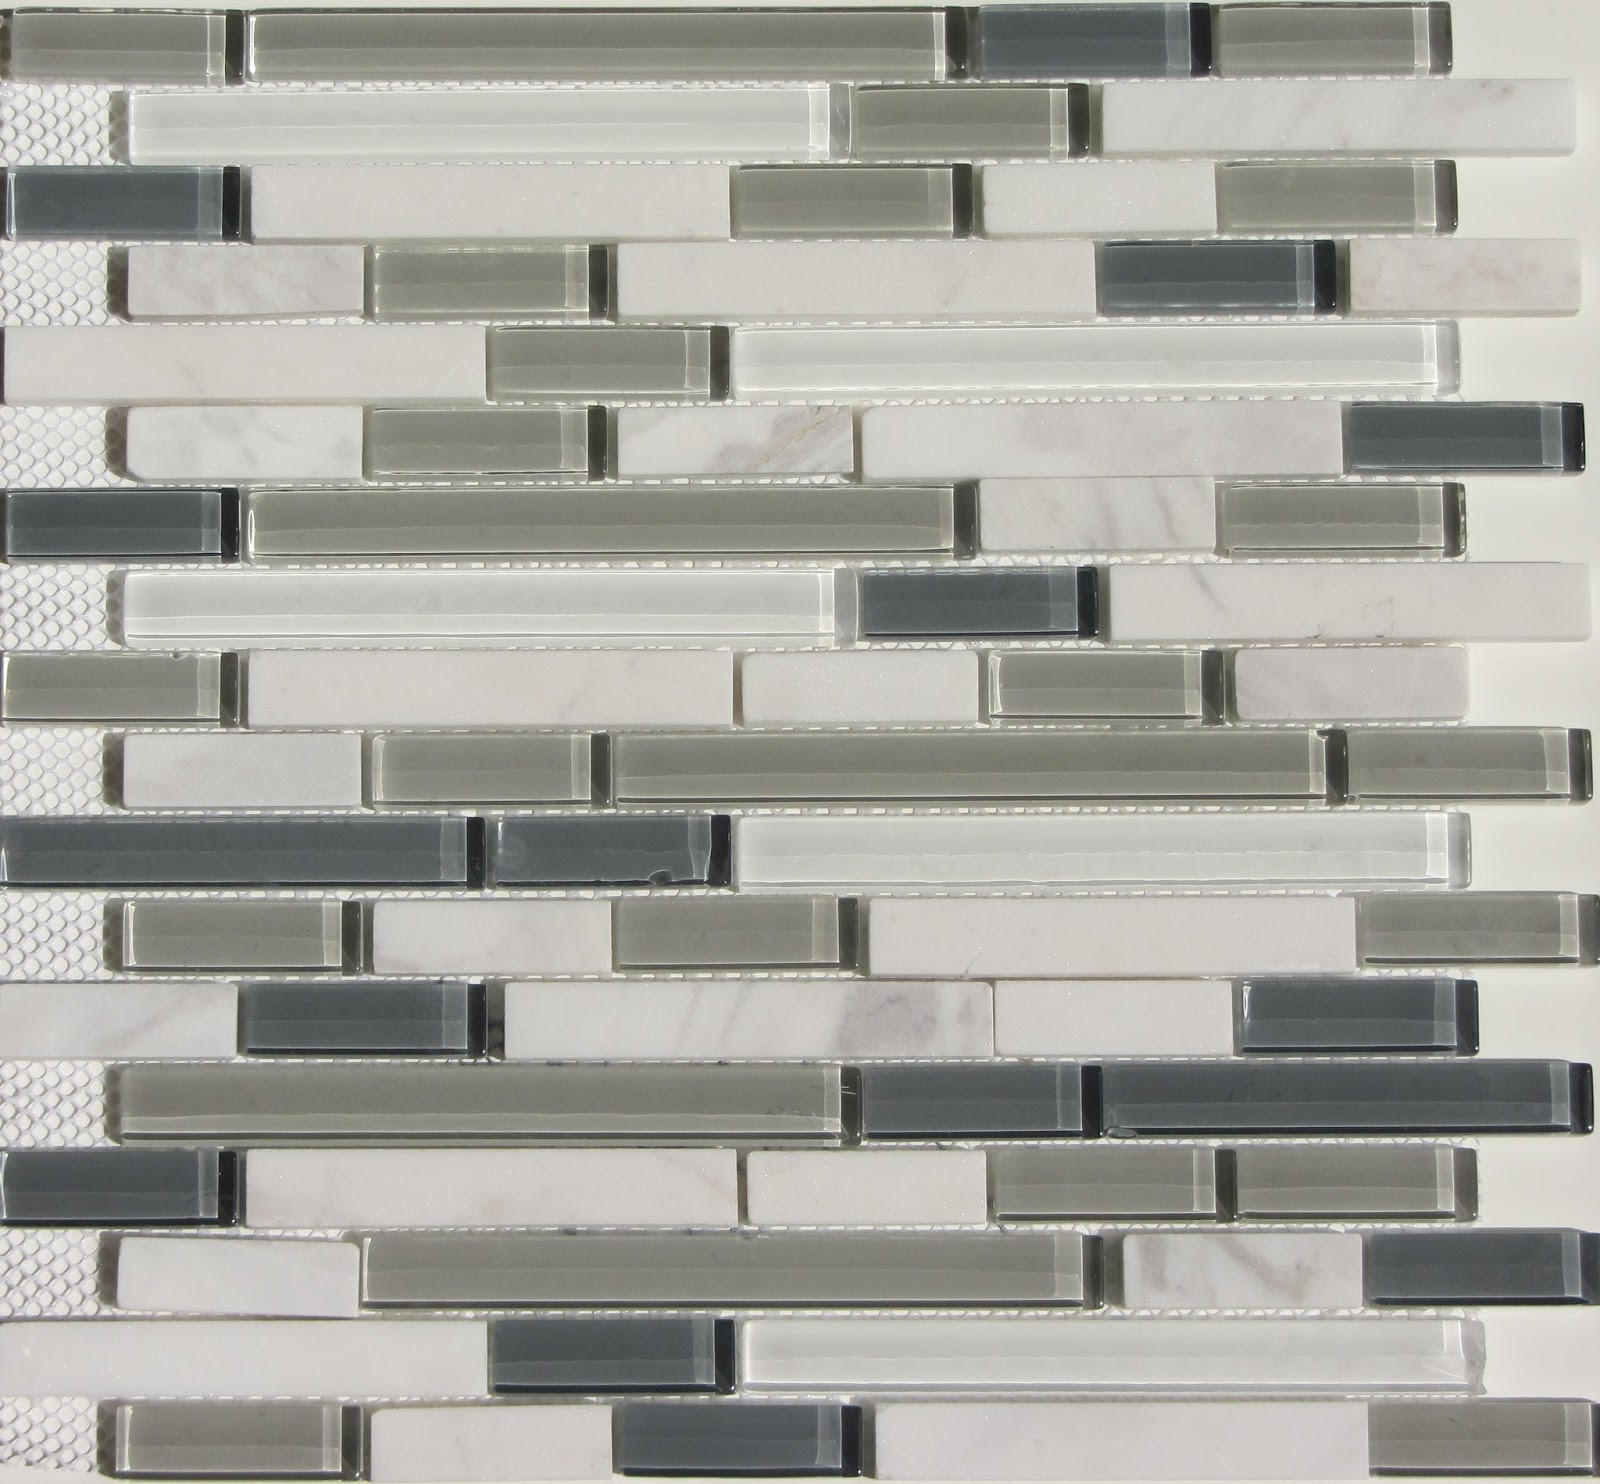 30 Ideas of using glass mosaic tile for bathroom backsplash